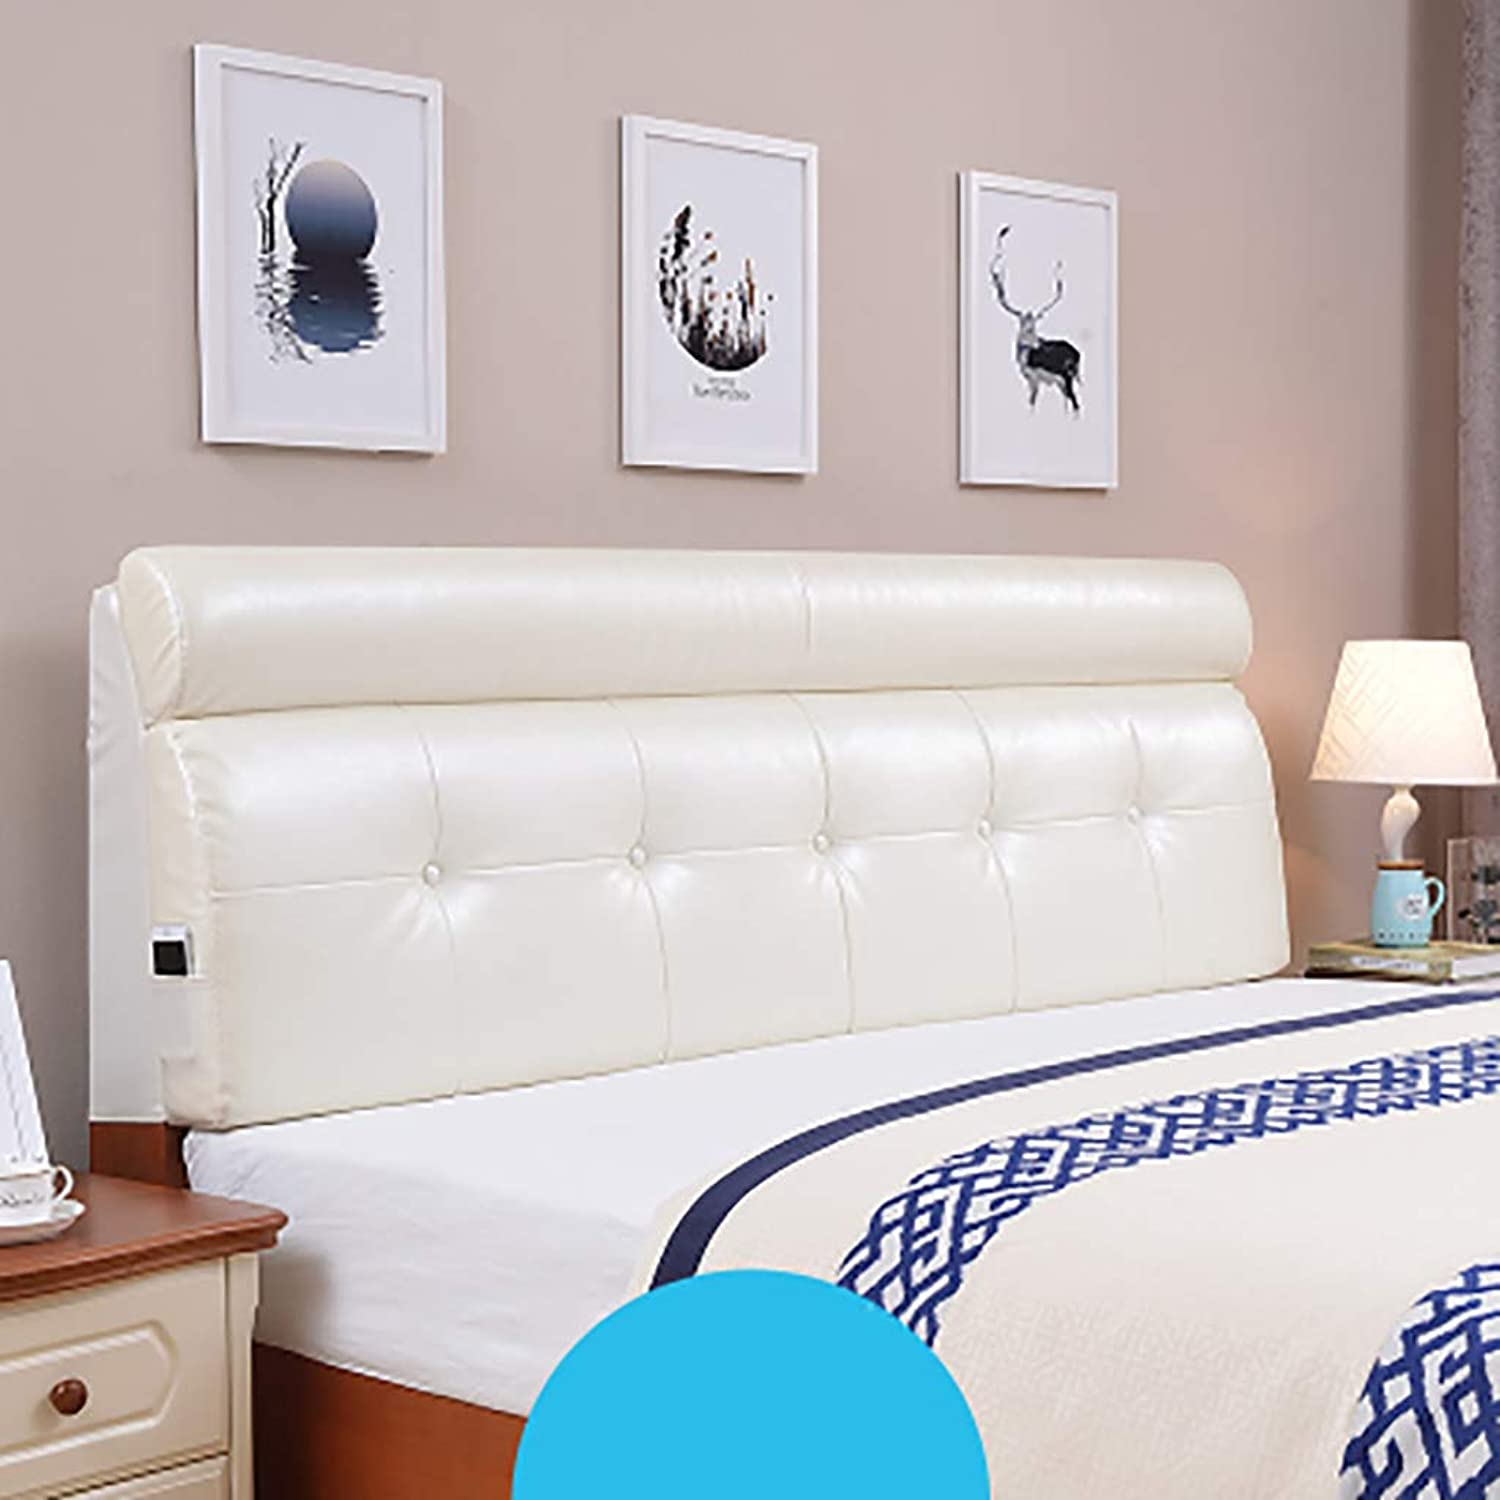 Headboard Bed Backrest Cushion Bed Cushion Bedside Pillow Leather with Bed headboard Large Soft Pillow Lumbar Support,Detachable 5 Solid colors 14 Sizes (color   Ivory White, Size   120  60  10CM)